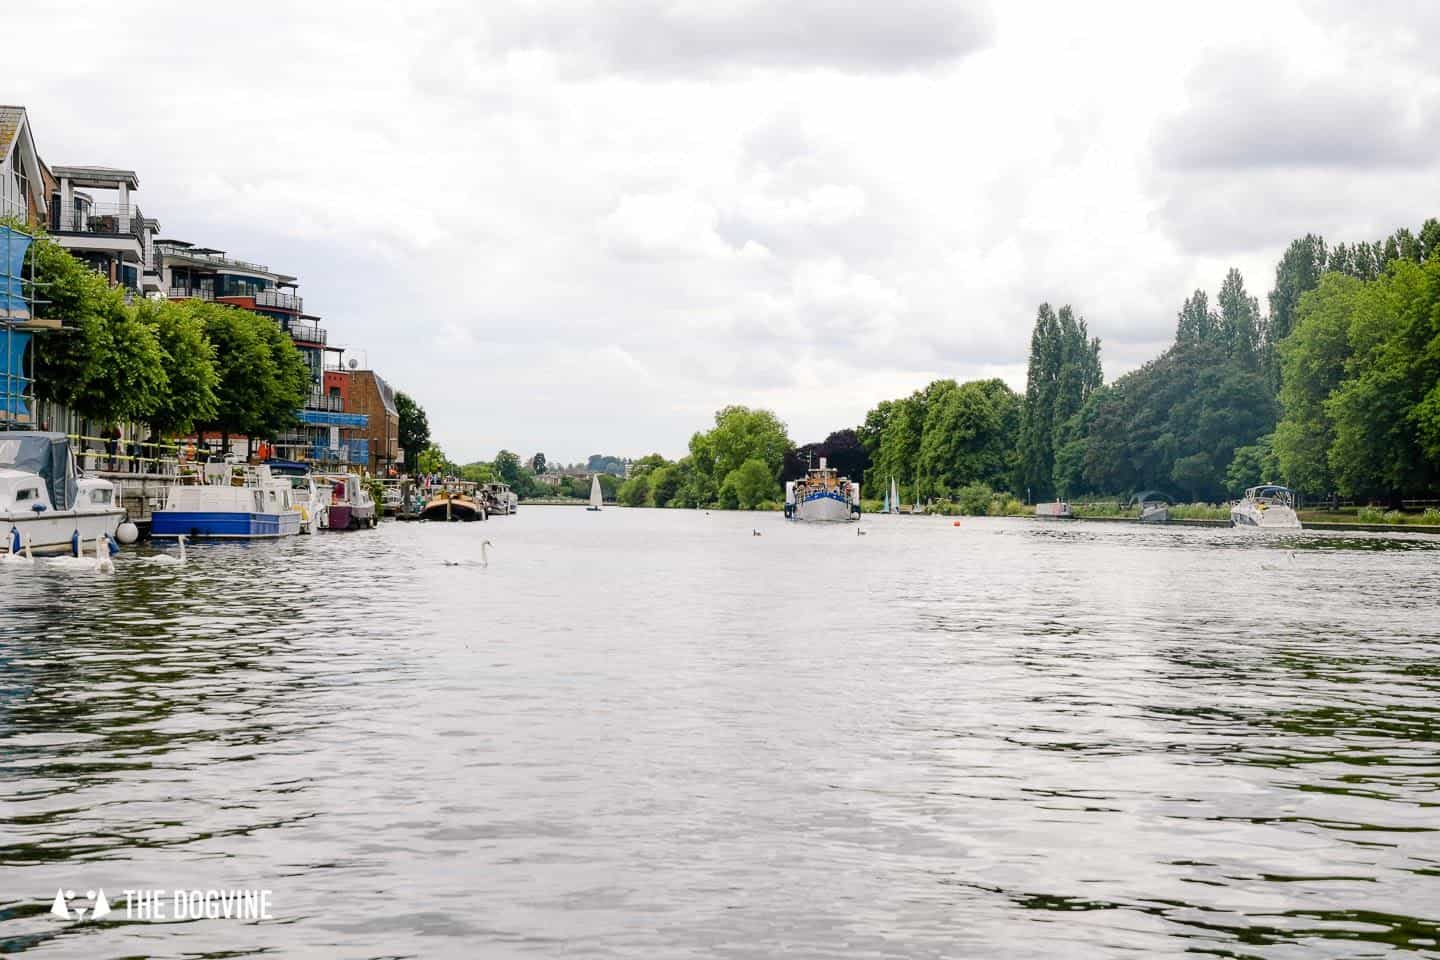 Dog-friendly Go Boat Kingston Upon Thames 54